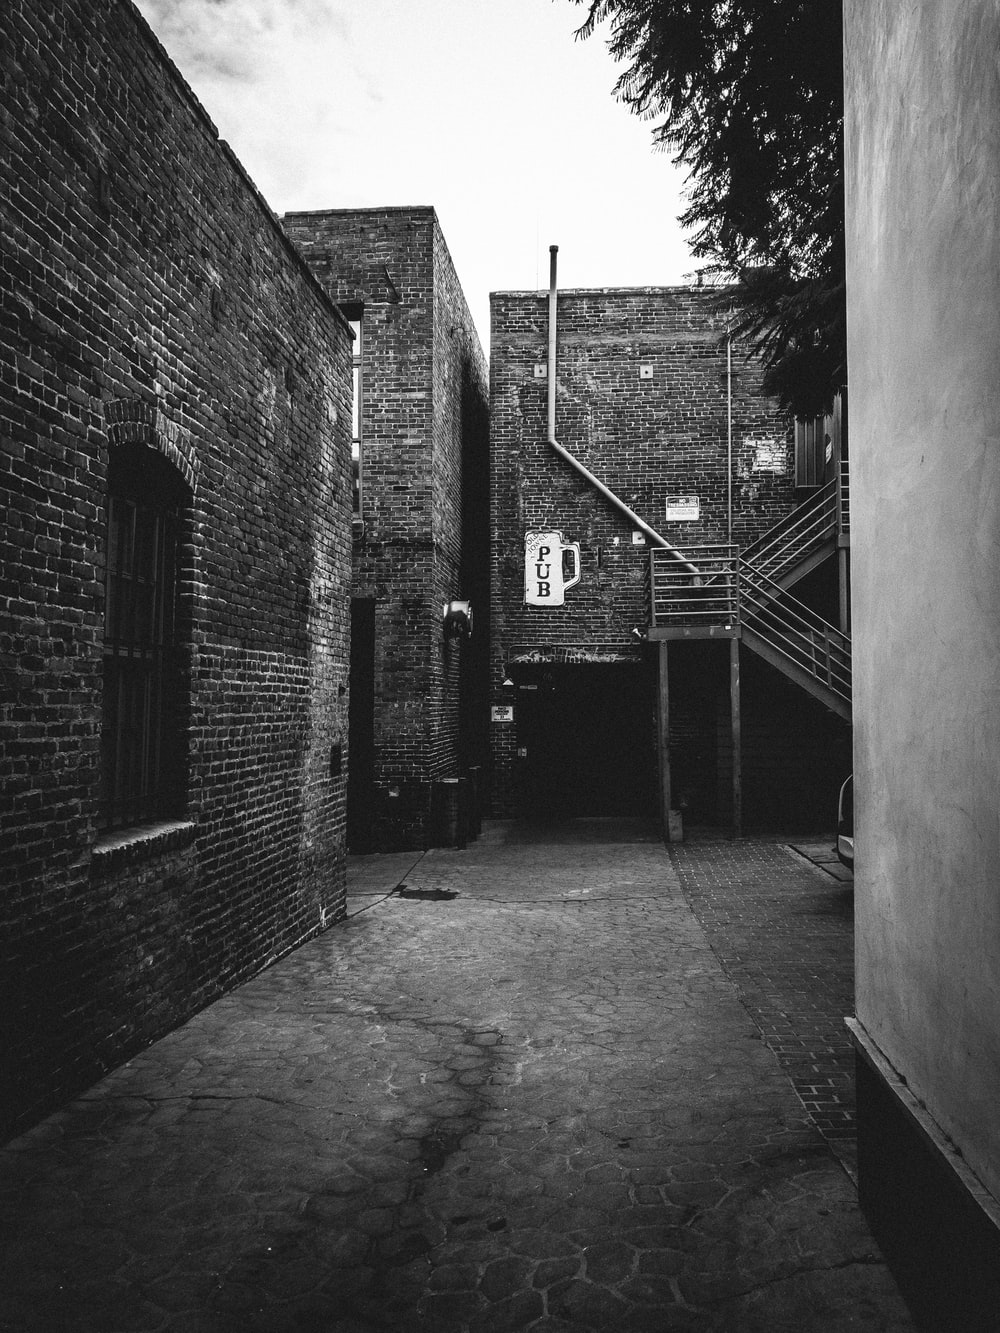 grayscale photography of alley with brick buildings